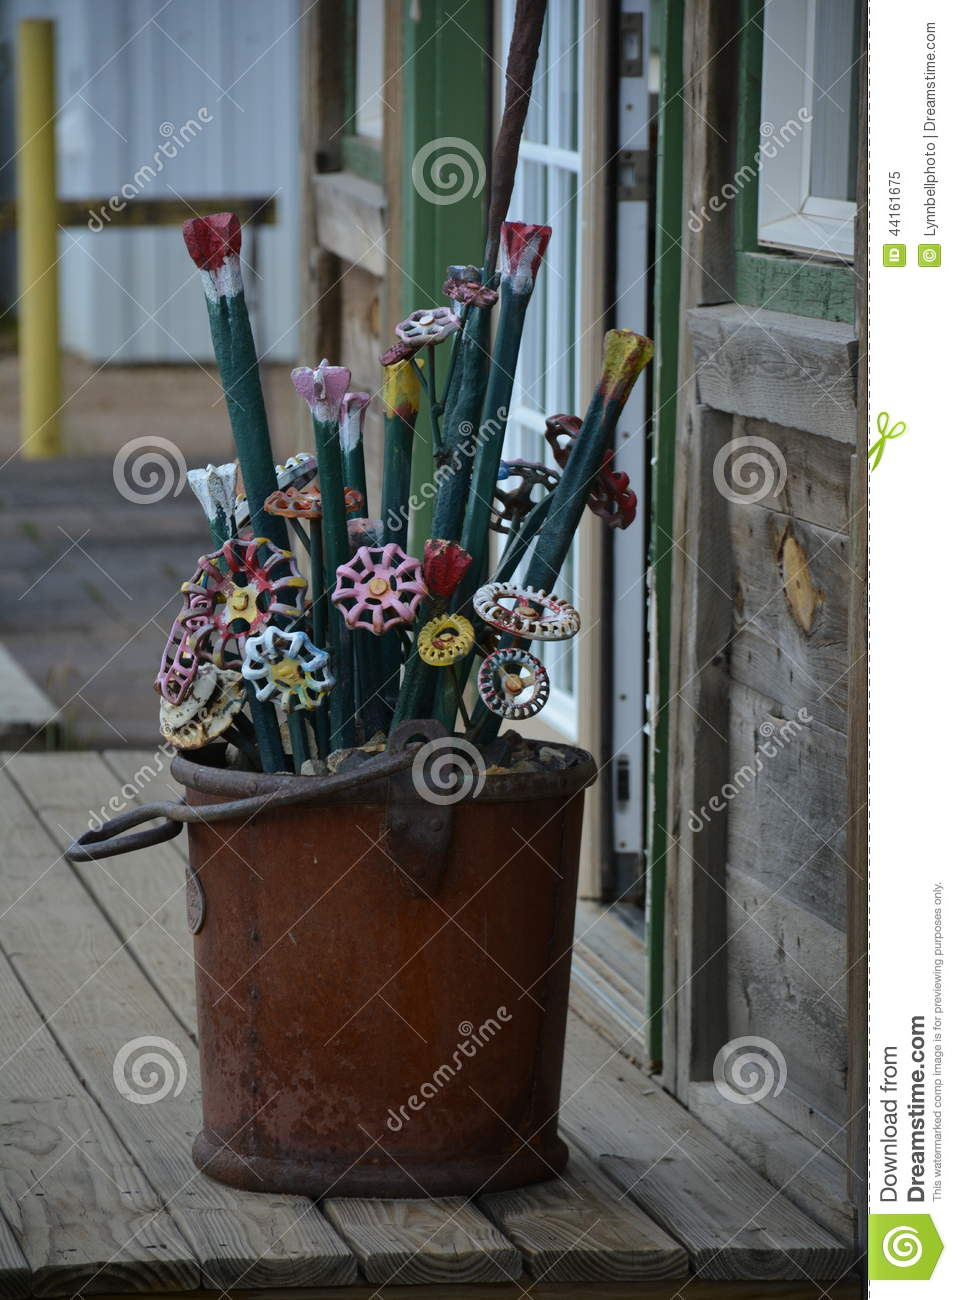 Iron Spicket Flower Art stock image. Image of rusty, arrangement ...